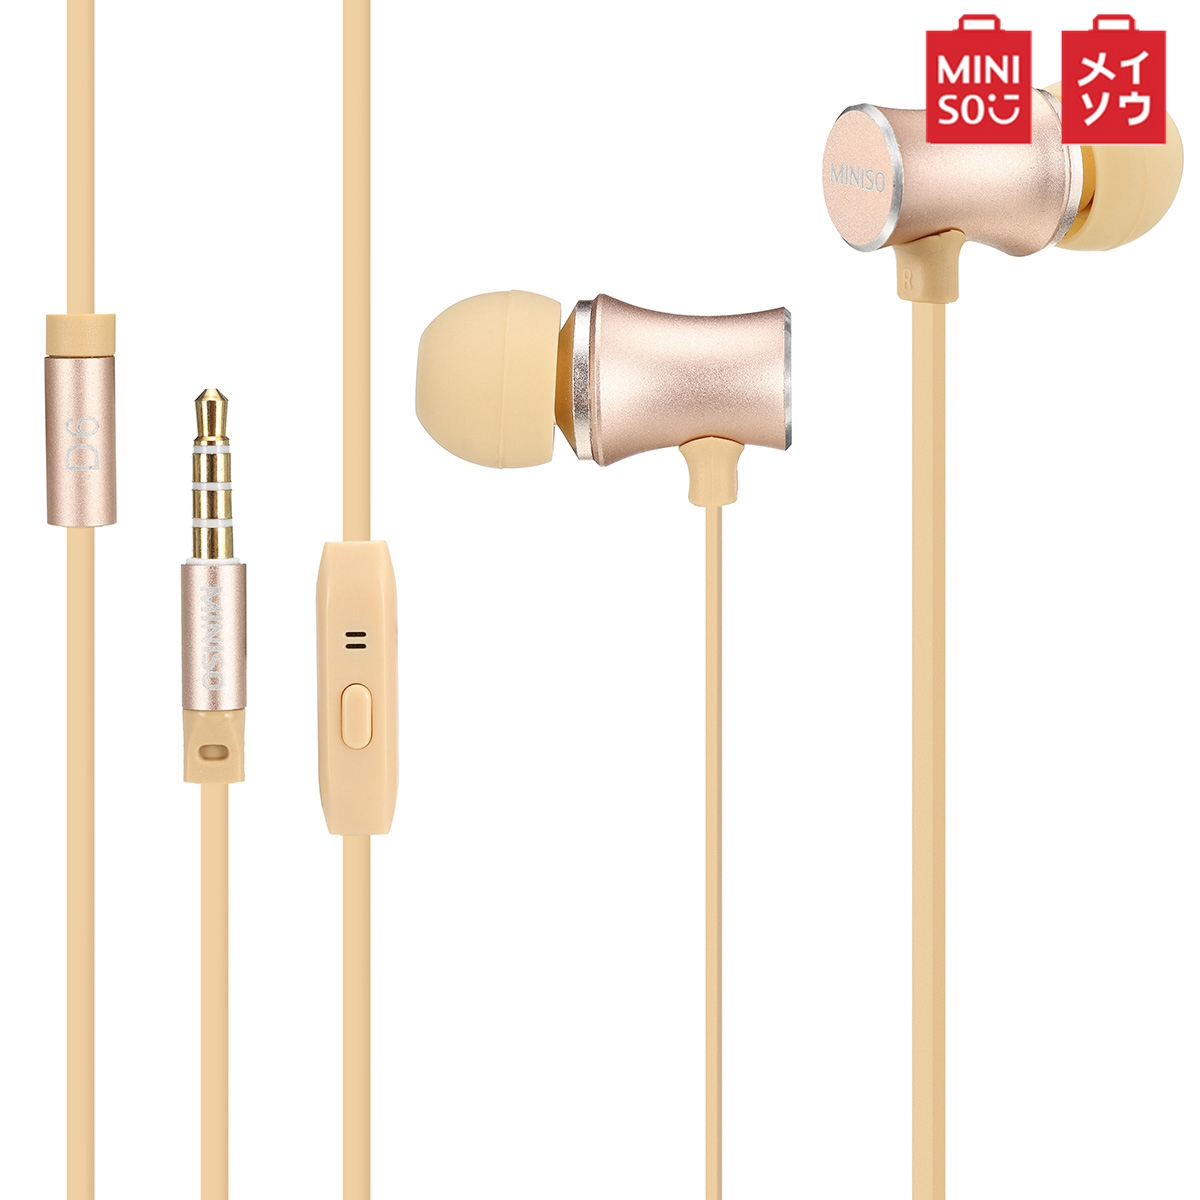 MINISO D6 Wired METAL Earphones Music Headphones 3.5mm Hi-Fi IN-EAR Stereo Headset Headphones For Phones Concision Style